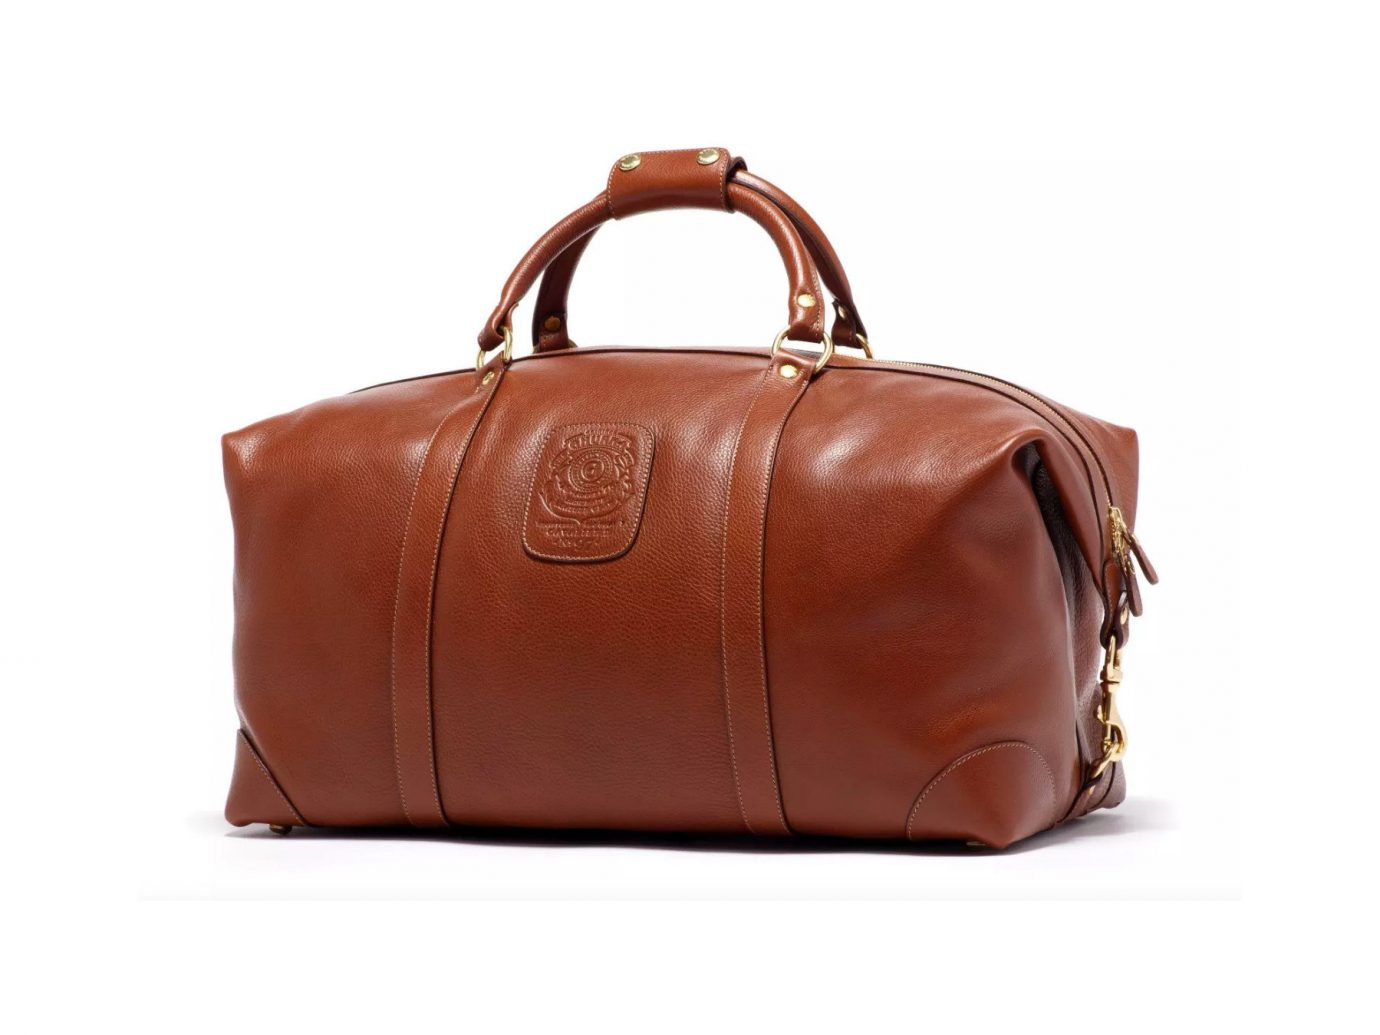 Packing Tips Style + Design Travel Shop accessory case bag leather brown suitcase luggage handbag indoor fashion accessory piece product caramel color shoulder bag suit peach hand luggage strap product design brand baggage tan colored